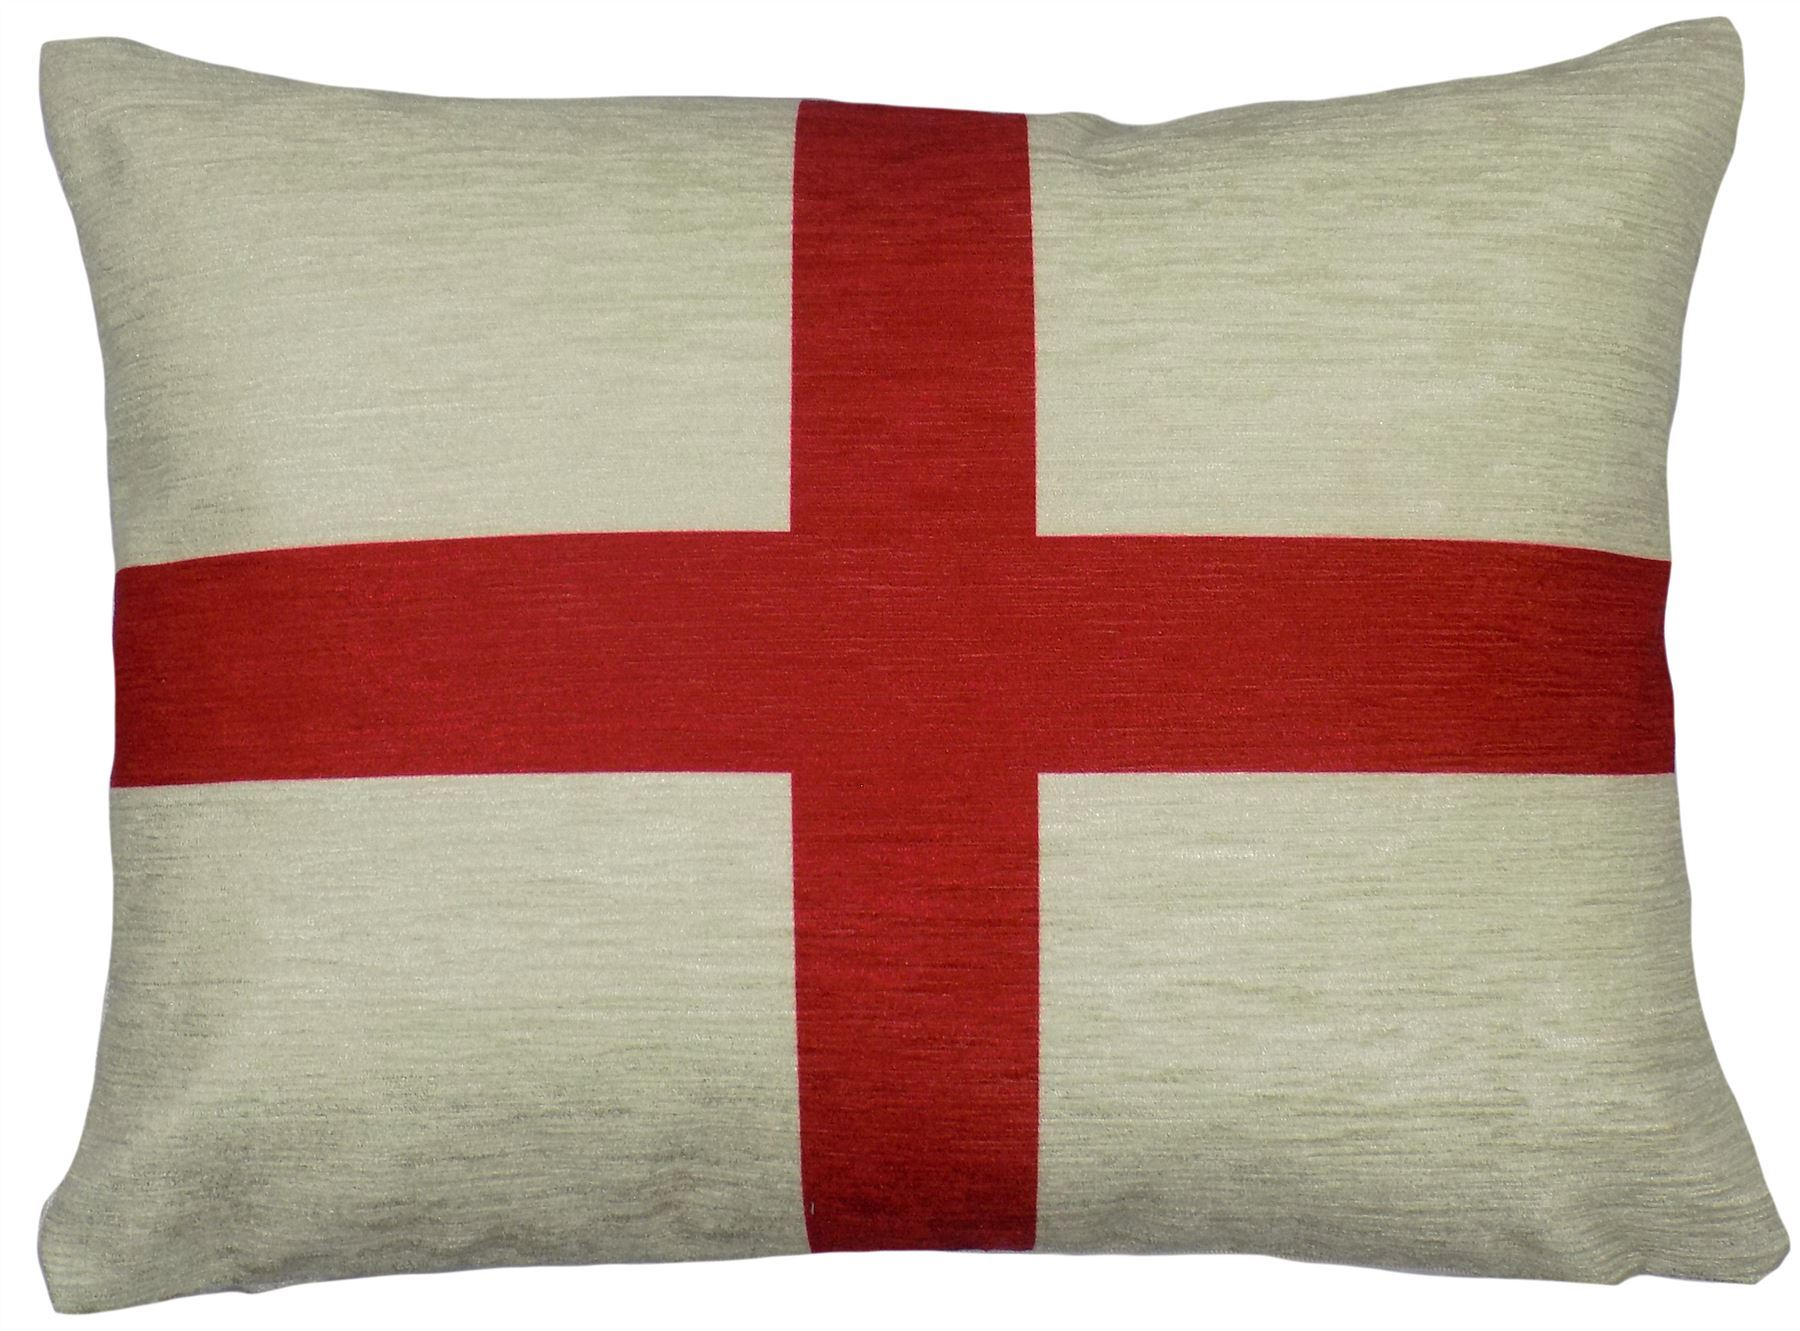 EVANS LICHFIELD UNION JACK FLAG MADE IN THE UK TAPESTRY CUSHION COVER 43 X 33CM